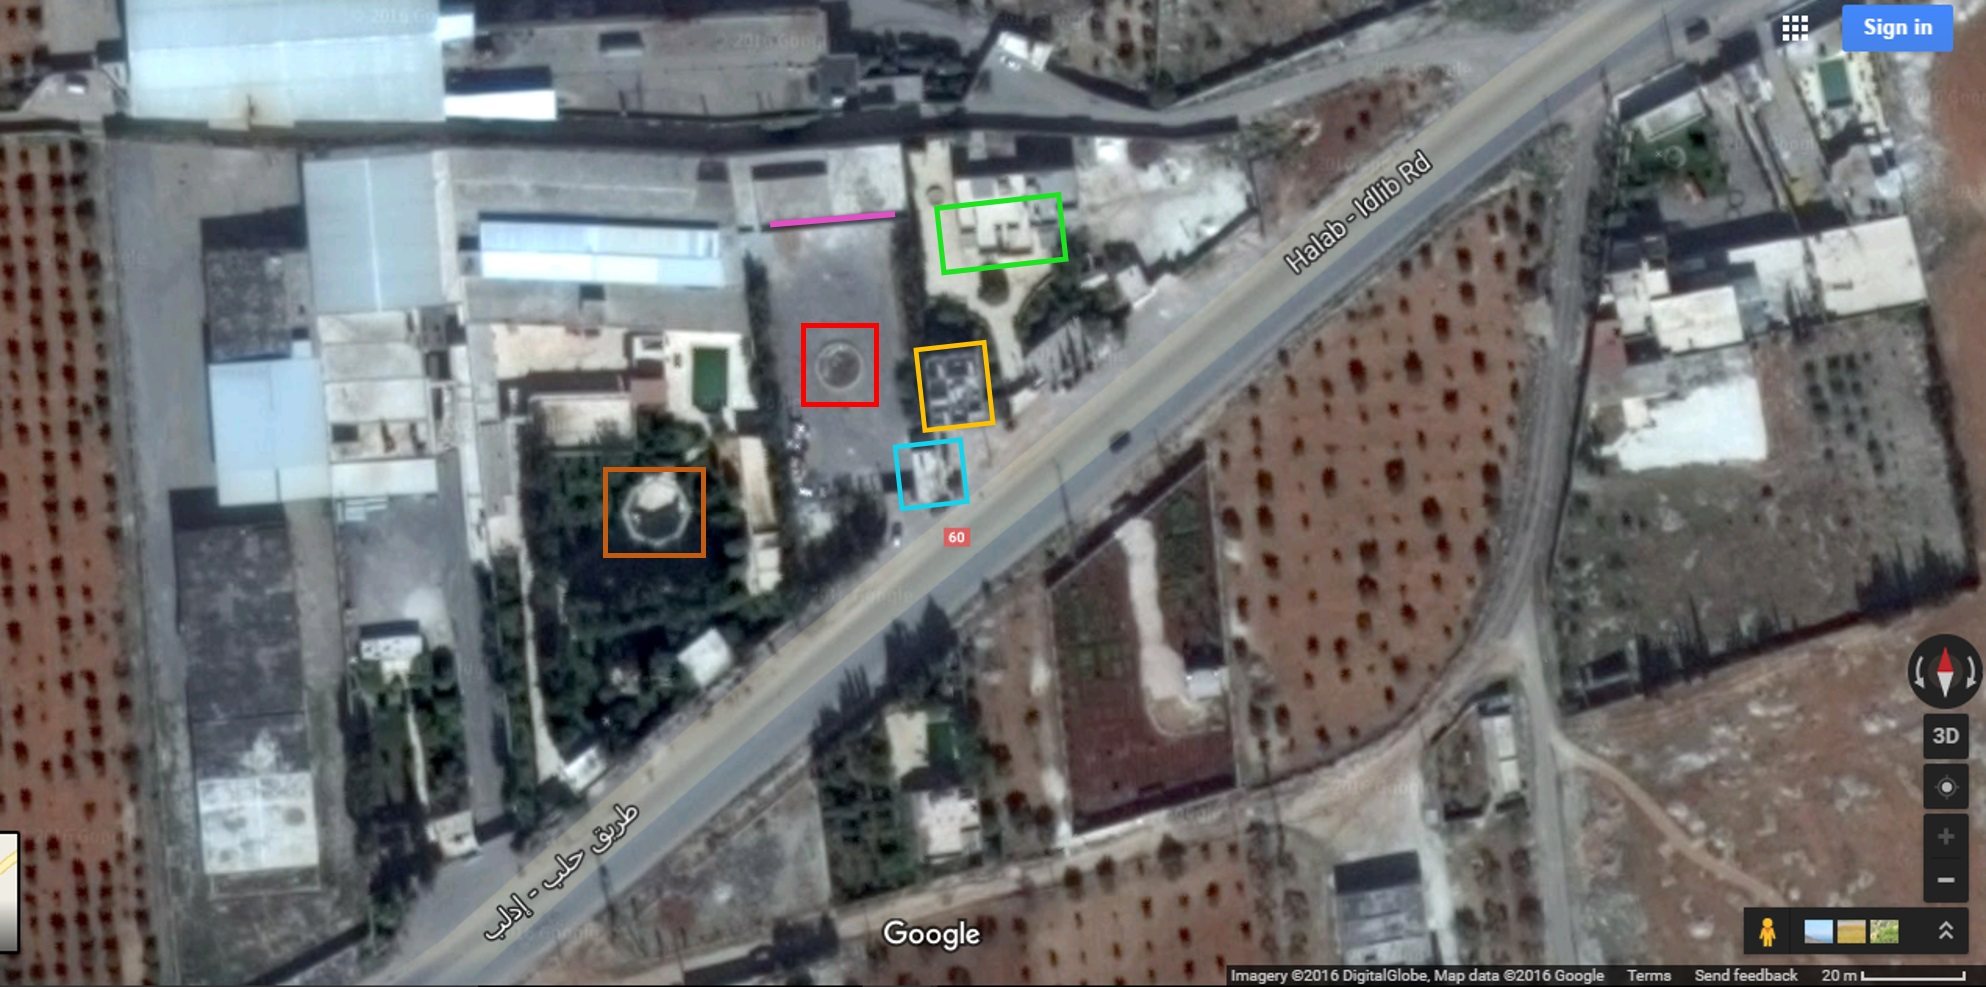 Fig 2 - Close up of warehouse complex - Highway 60 runs from bottom left to top right